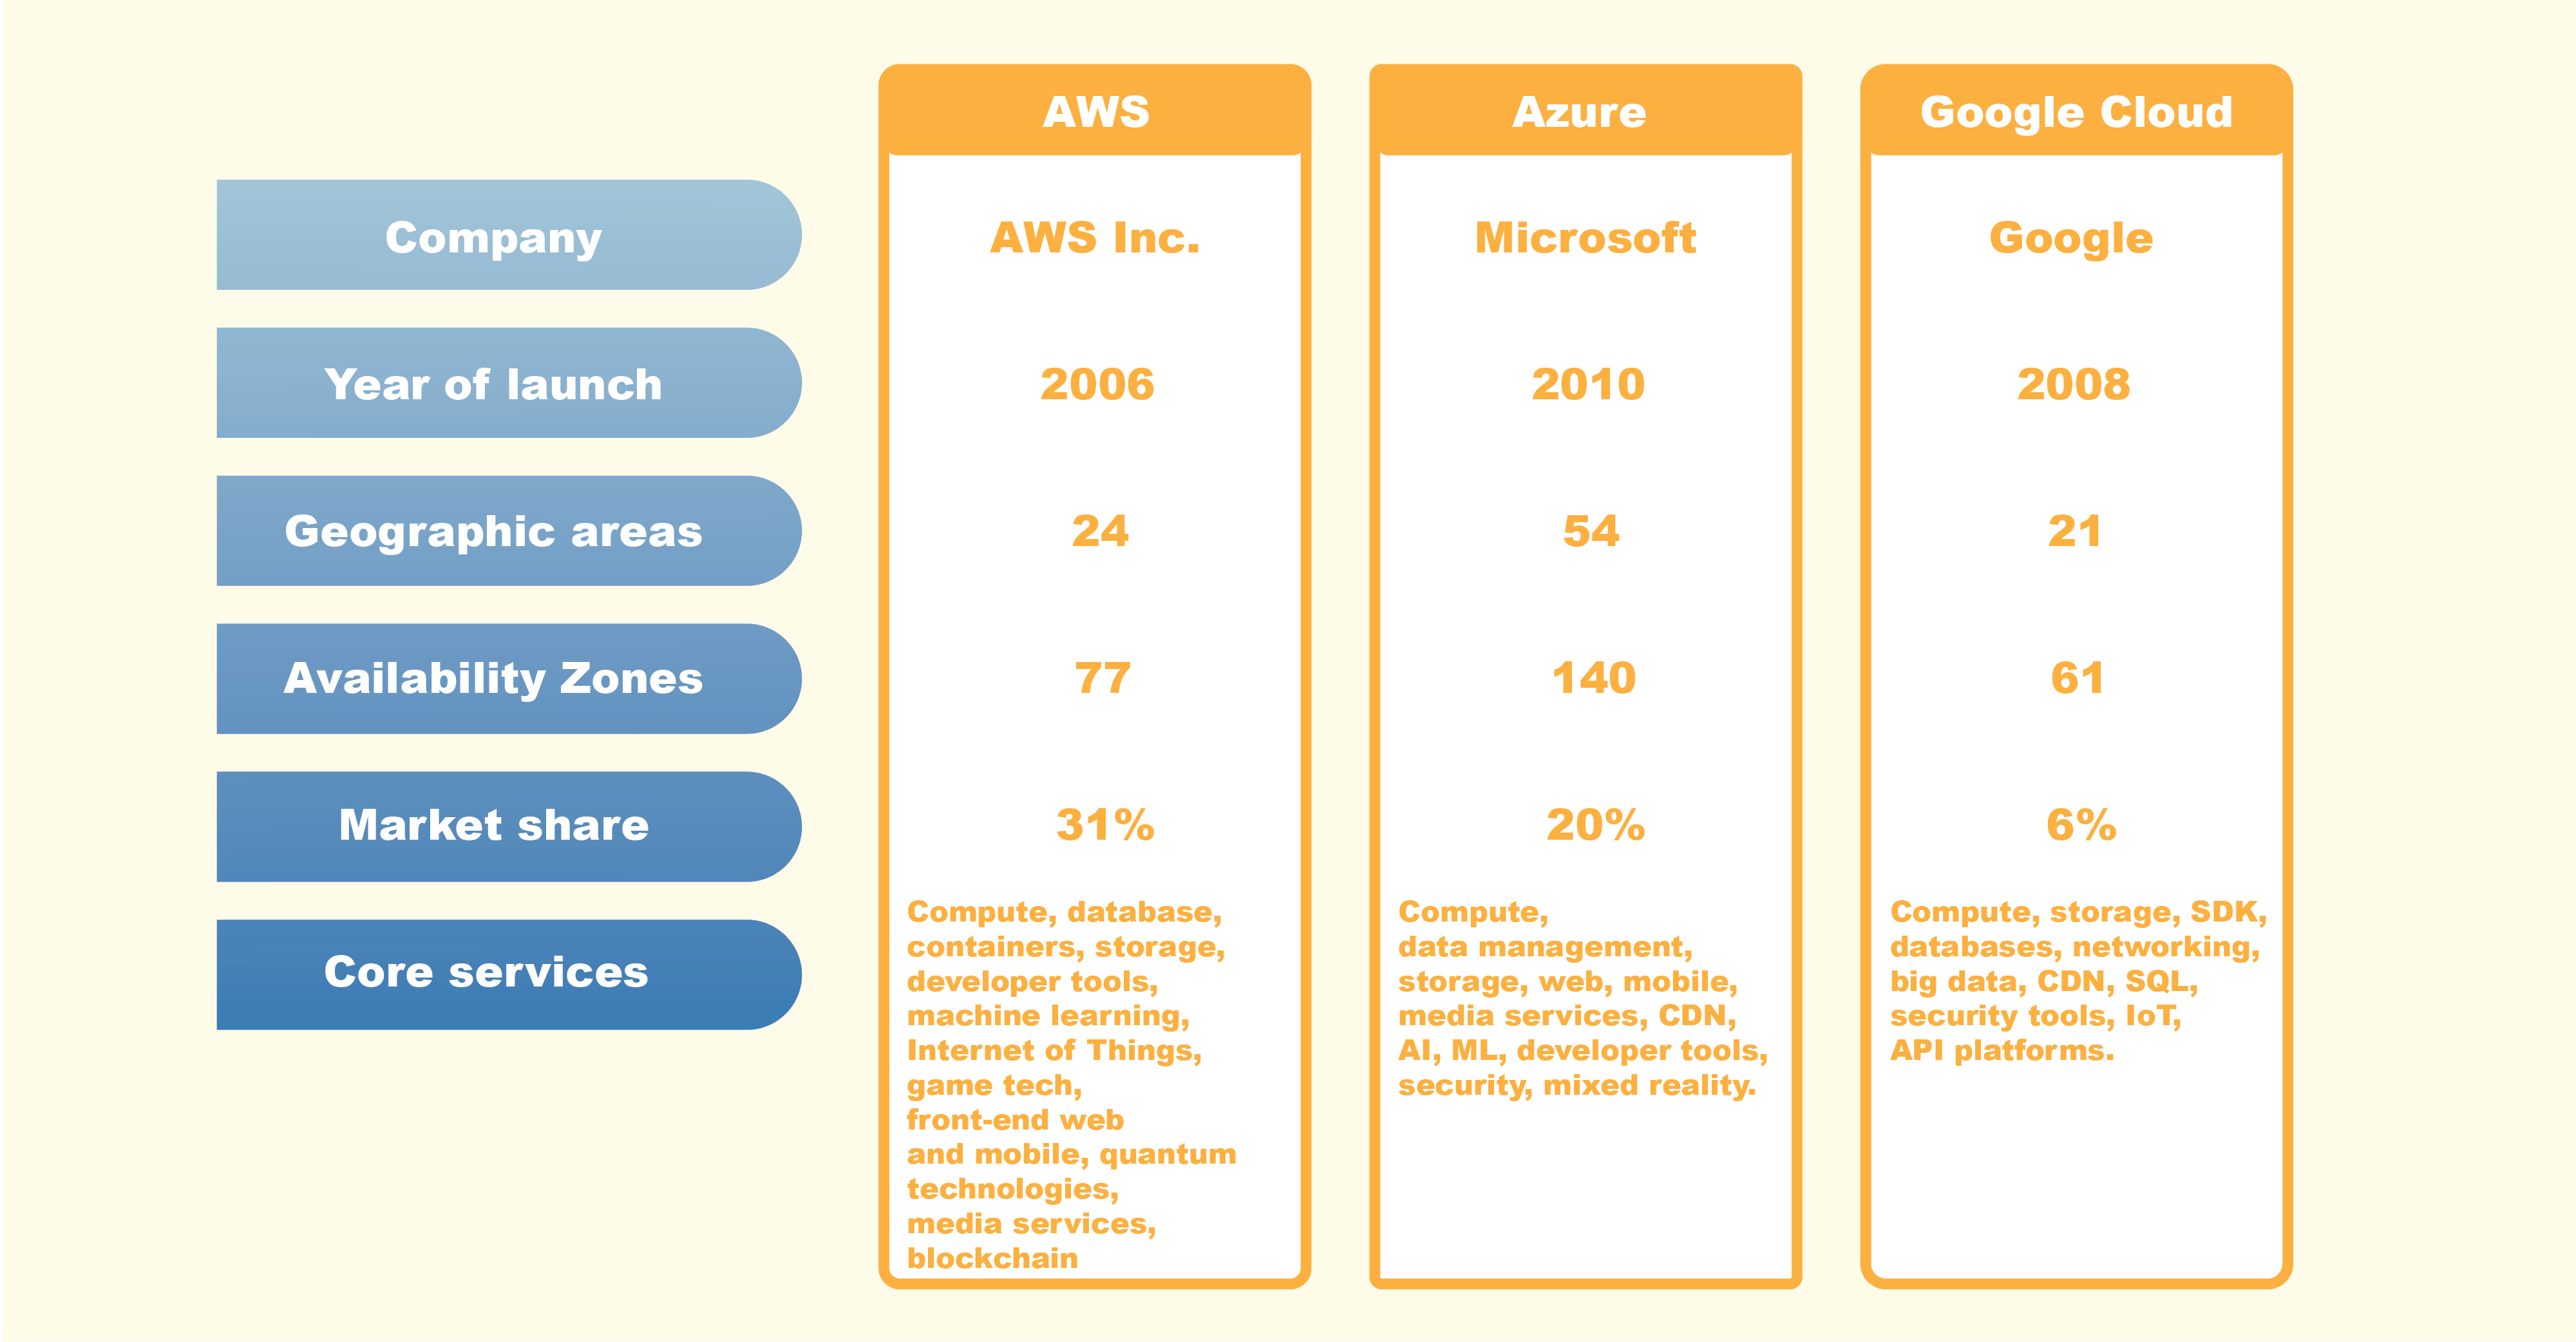 The comparison of top cloud providers